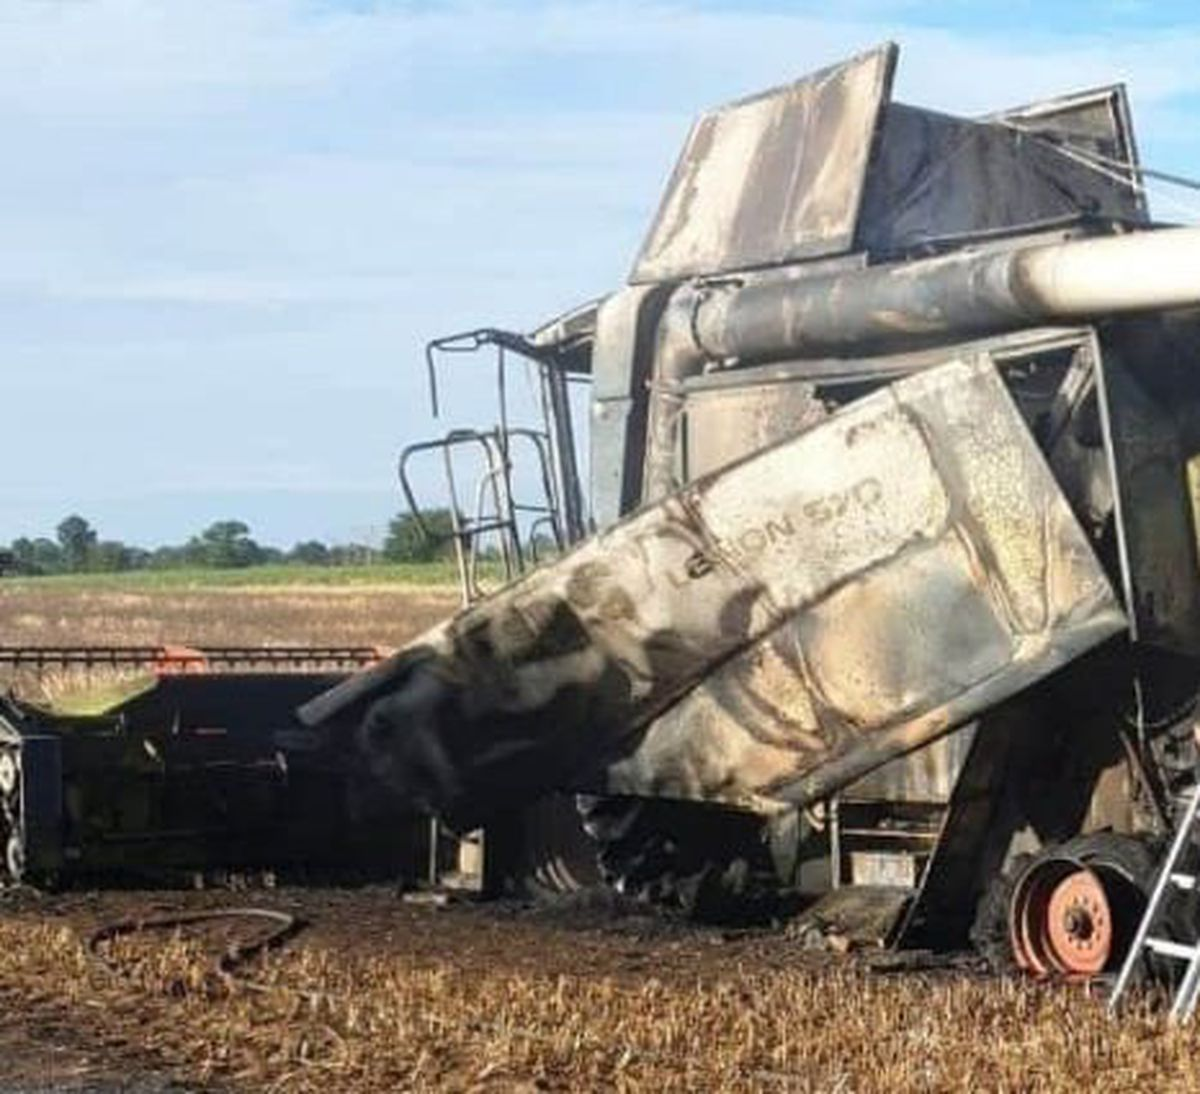 The combine harvester that was involved in the fire. Photo: Market Drayton Fire Station